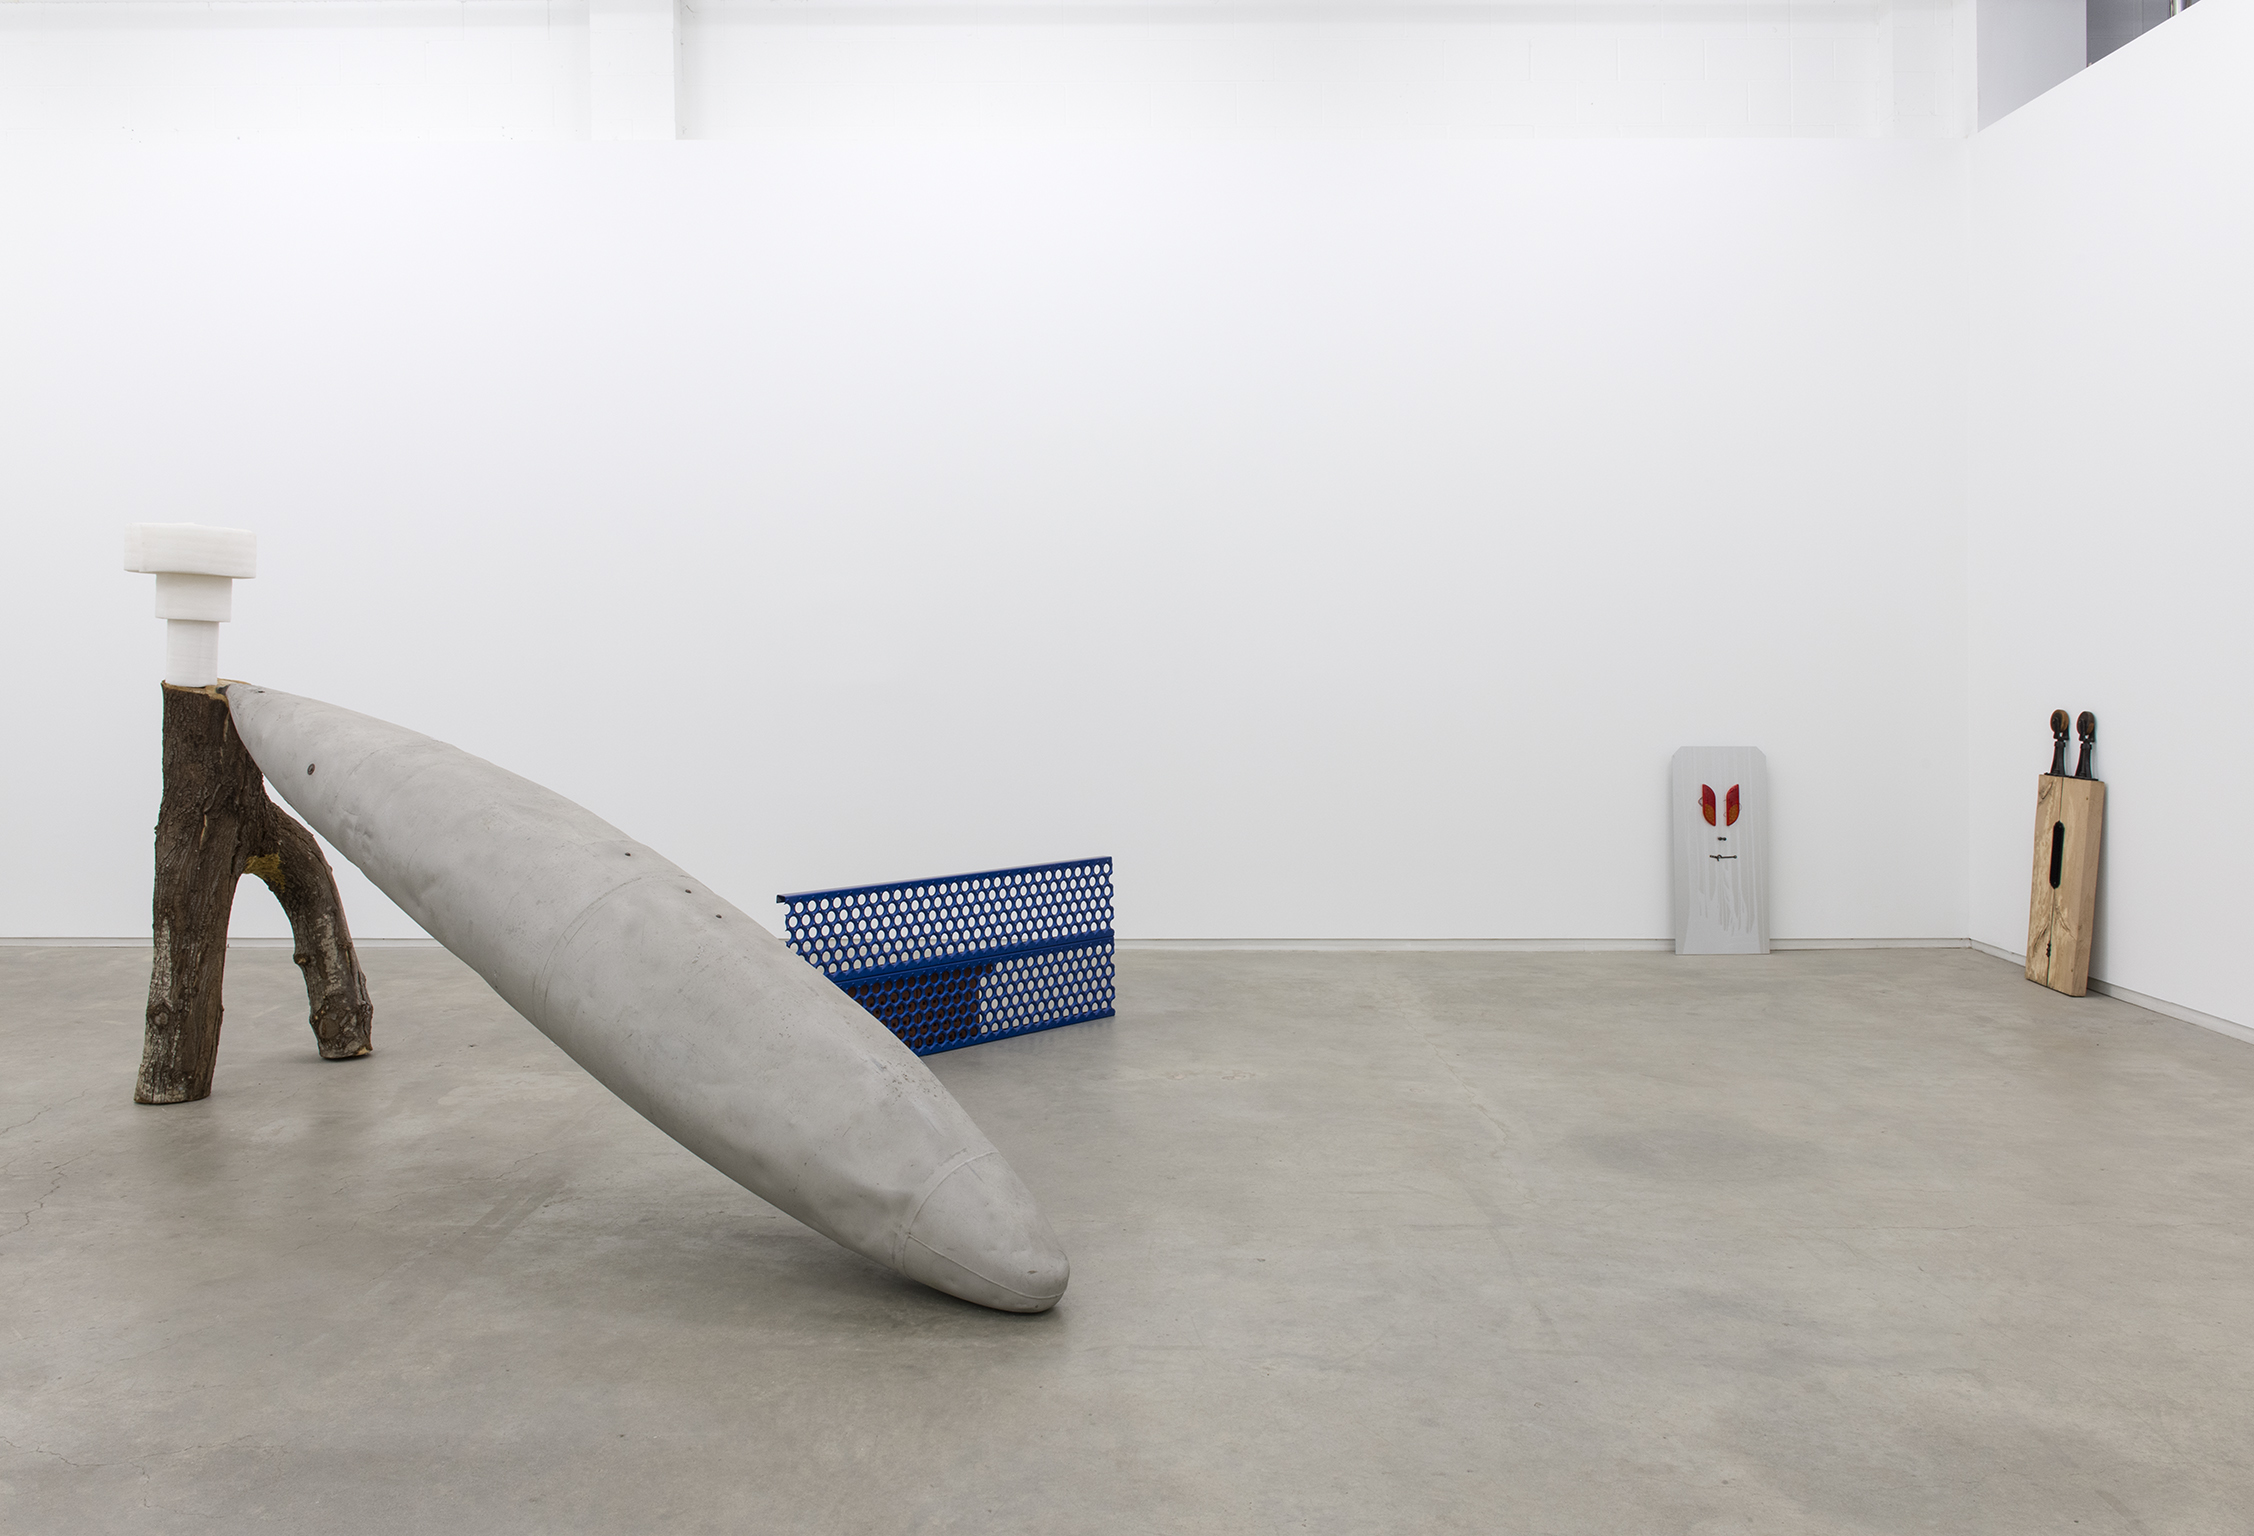 ​Christina Mackie​, Jerry Pethick, Bigger than a book, wilder than a tree, installation view, Catriona Jeffries, 2012 by